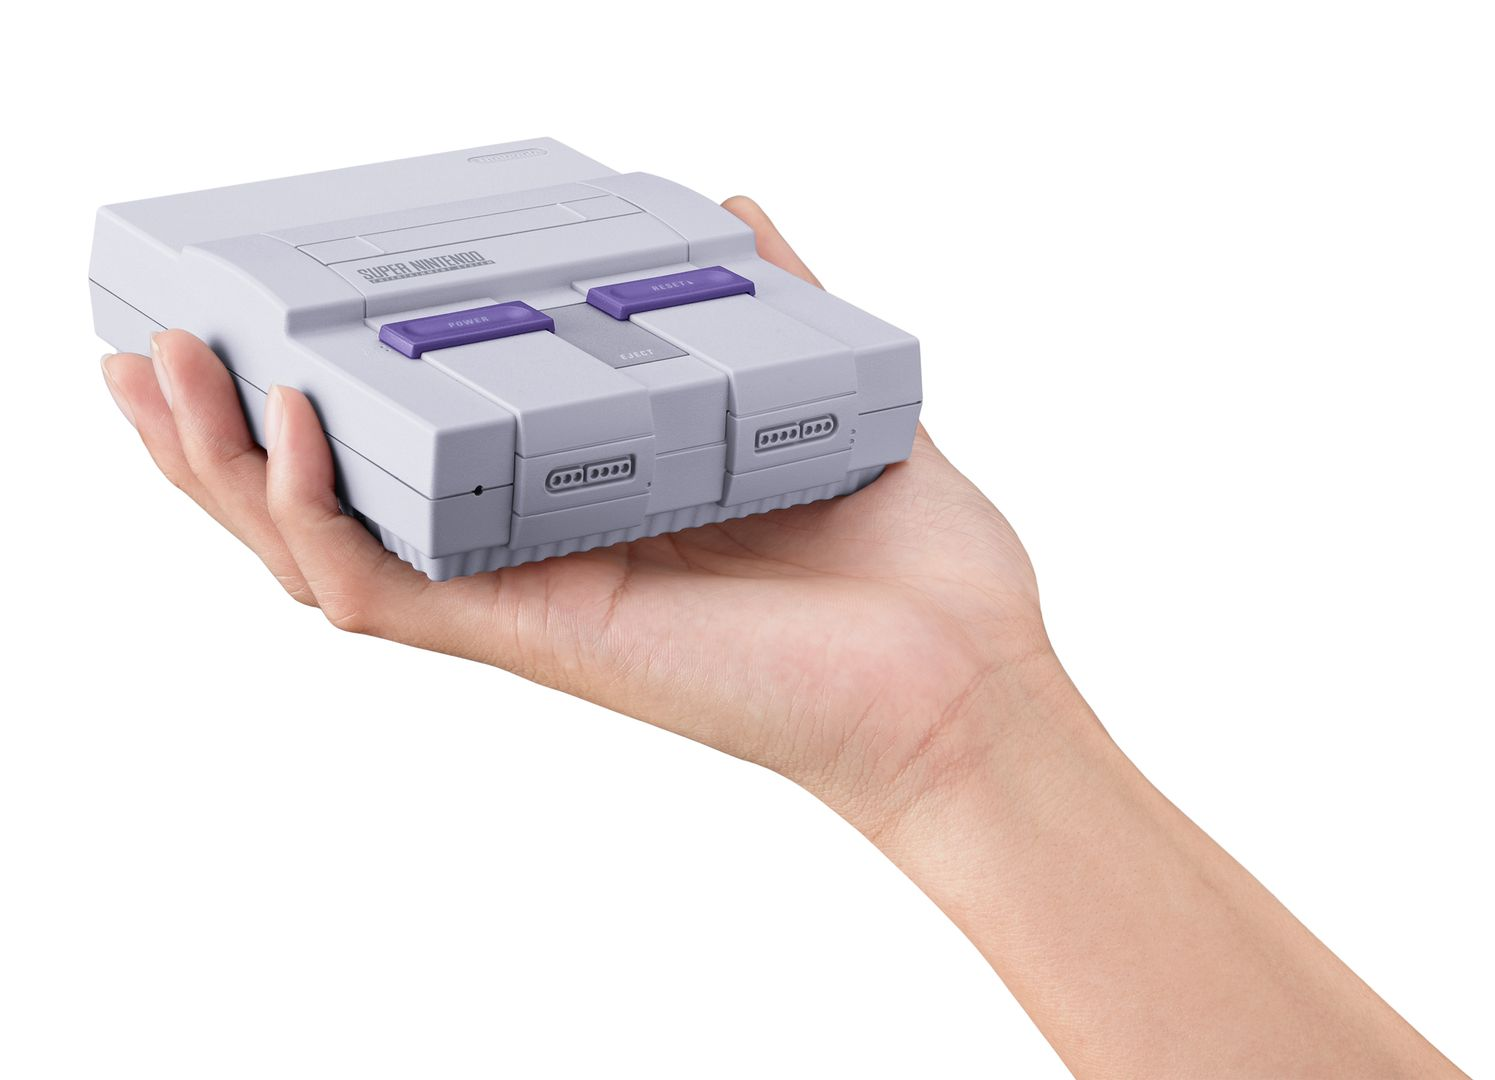 Nintendo SNES Classic Edition: Games, price and release